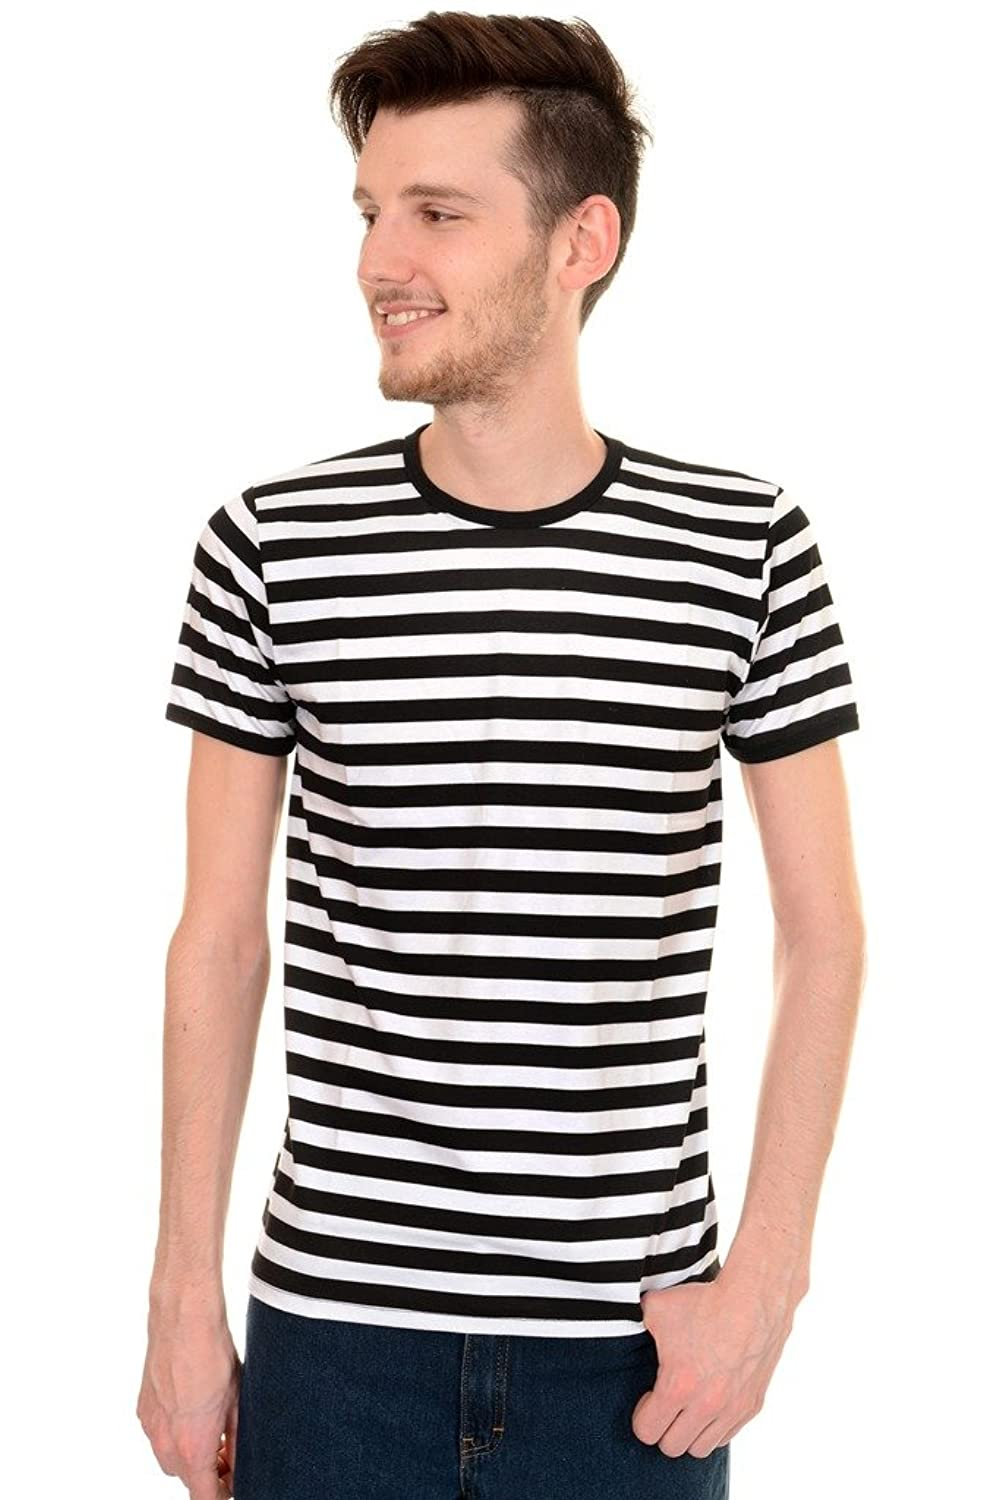 1930s Style Mens Shirts Mens Indie Retro 60s Black & White Striped Short Sleeve T Shirt $19.95 AT vintagedancer.com